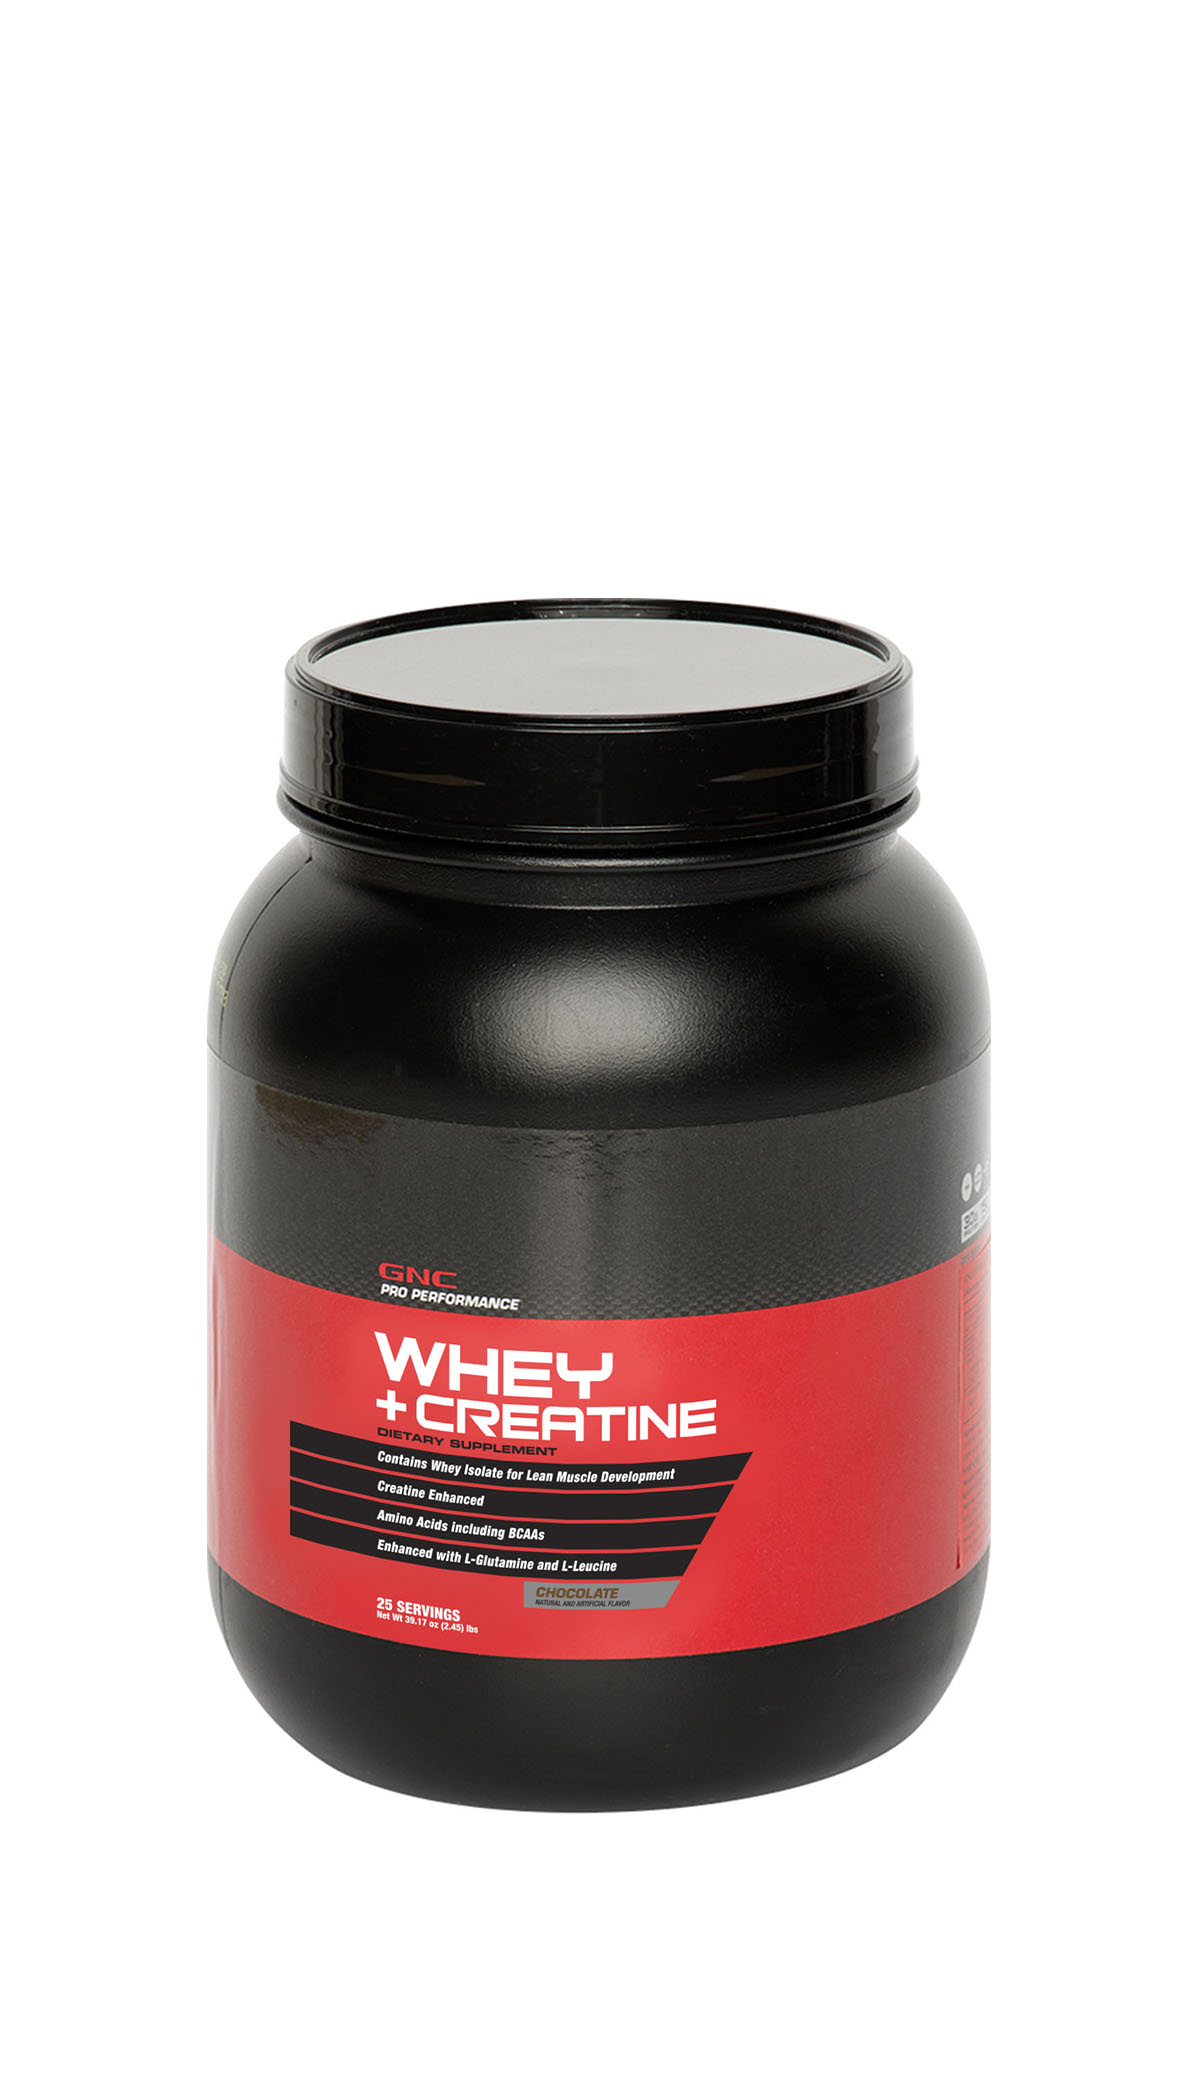 What's the best muscle building supplement at gnc